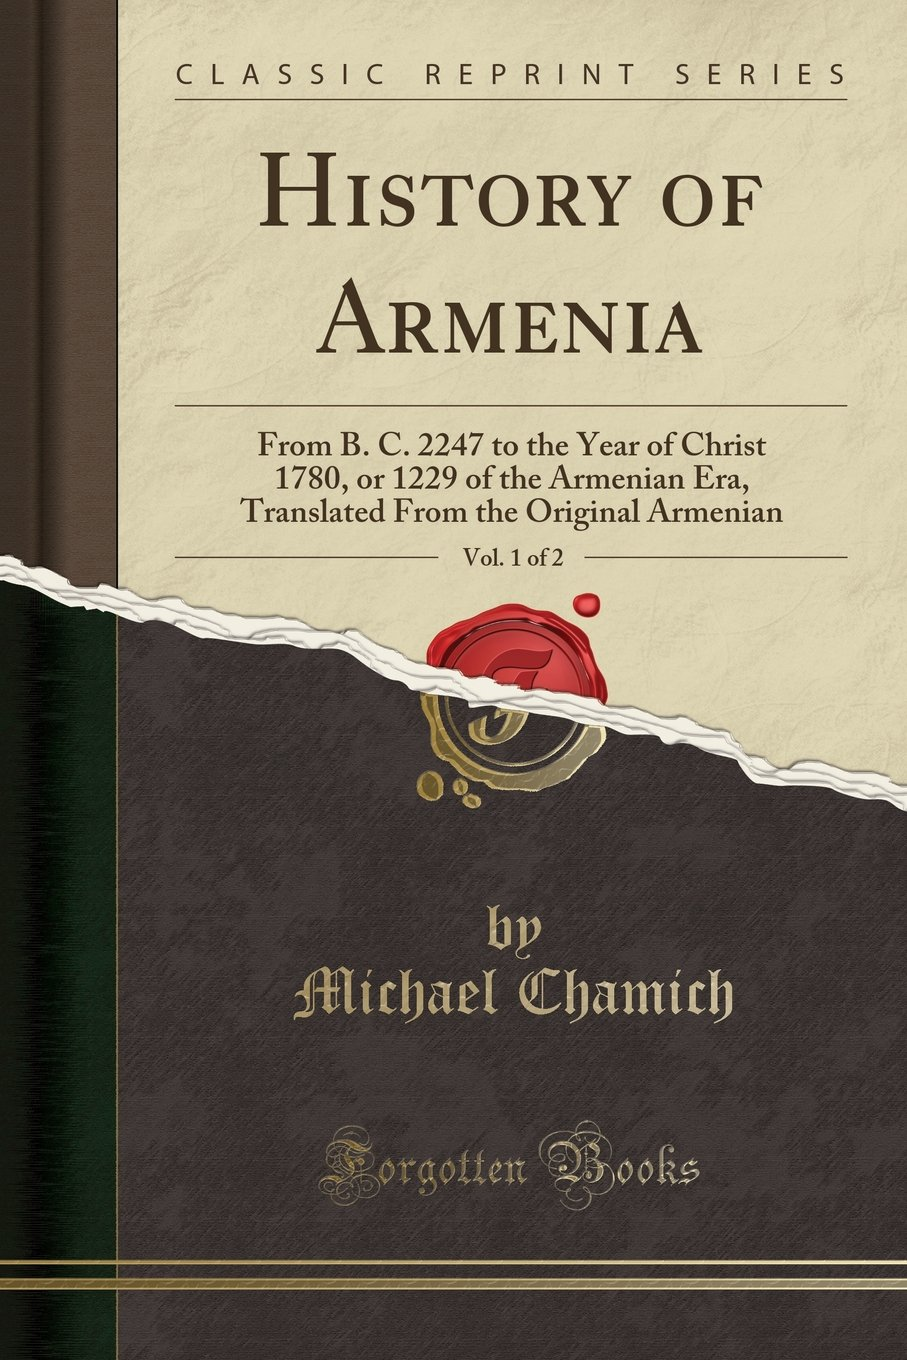 Download History of Armenia, Vol. 1 of 2: From B. C. 2247 to the Year of Christ 1780, or 1229 of the Armenian Era, Translated from the Original Armenian (Classic Reprint) pdf